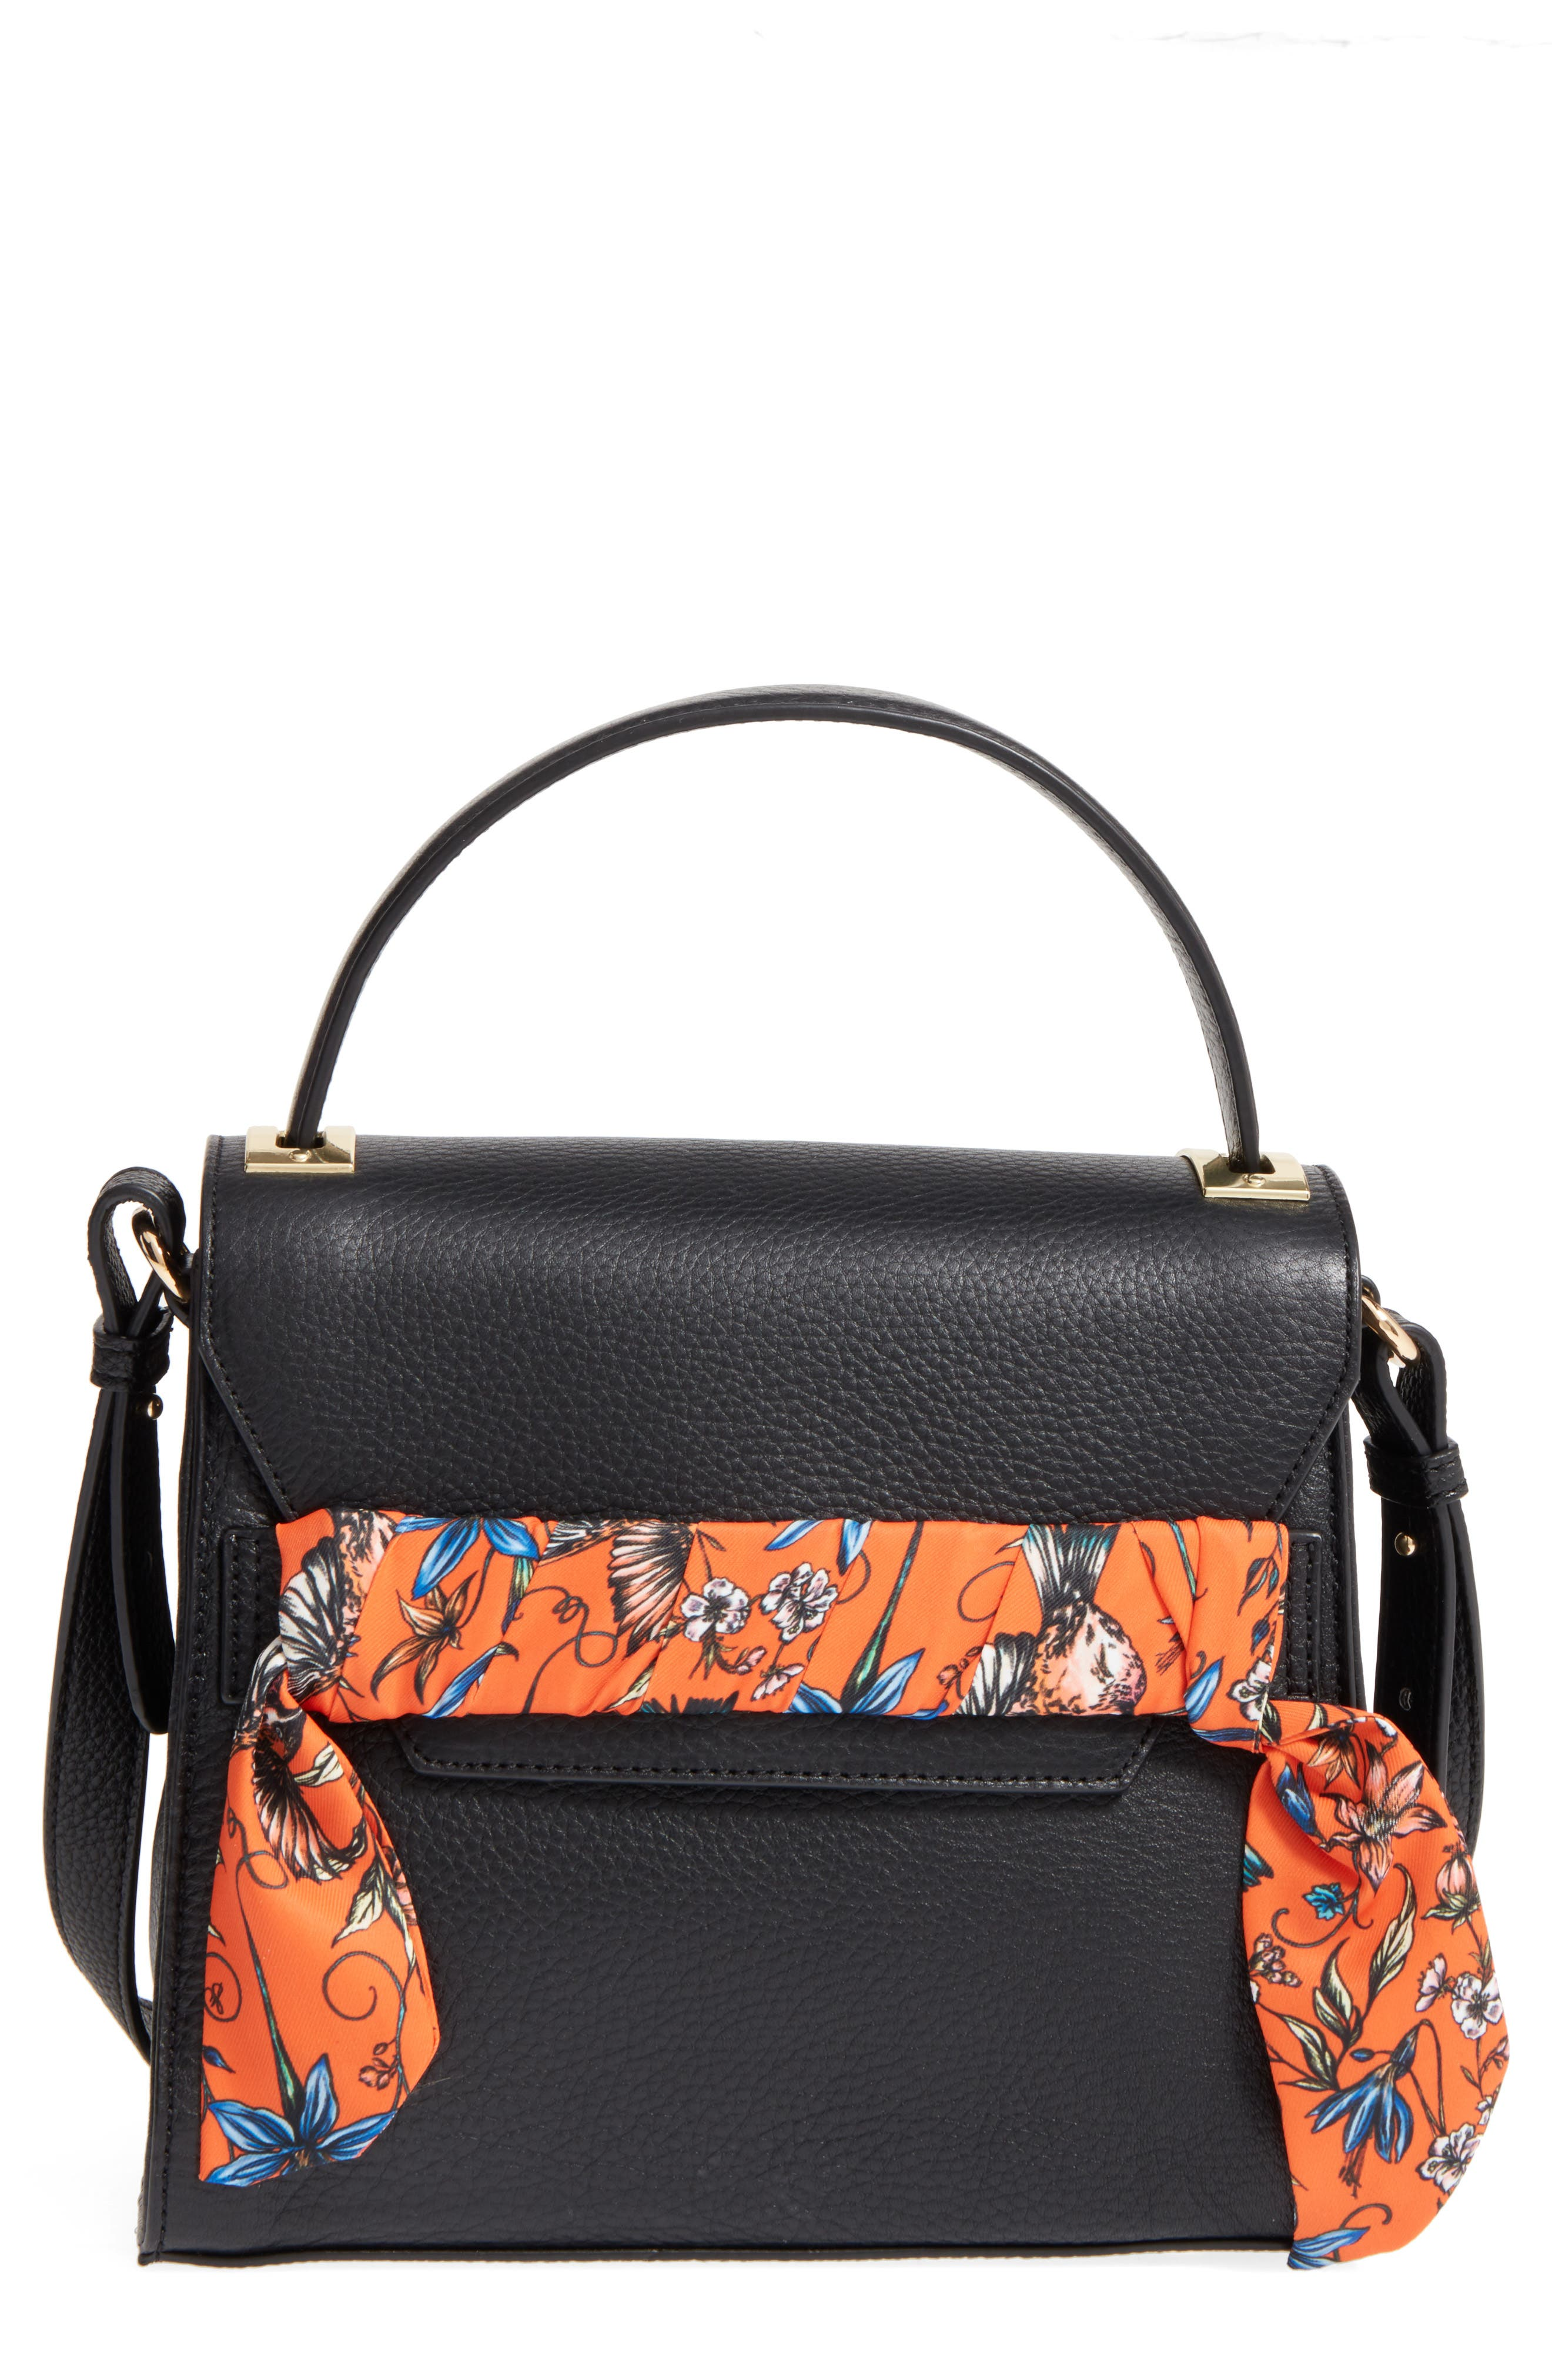 Main Image - Sam Edelman Mia Calfskin Top Handle Satchel